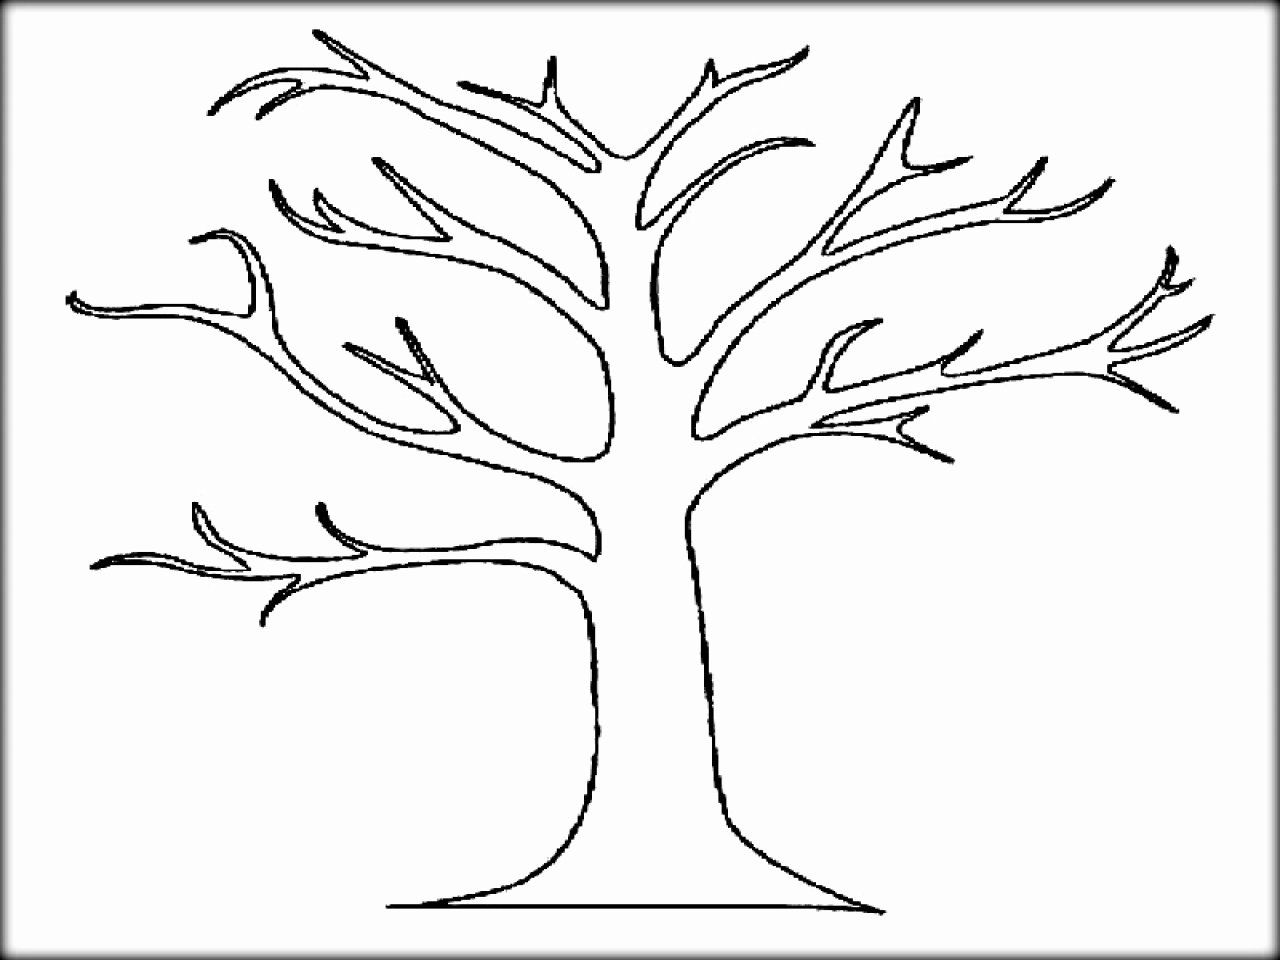 24 Fall Tree Coloring Page In 2020 Tree Coloring Page Tree Drawing Easy Drawings